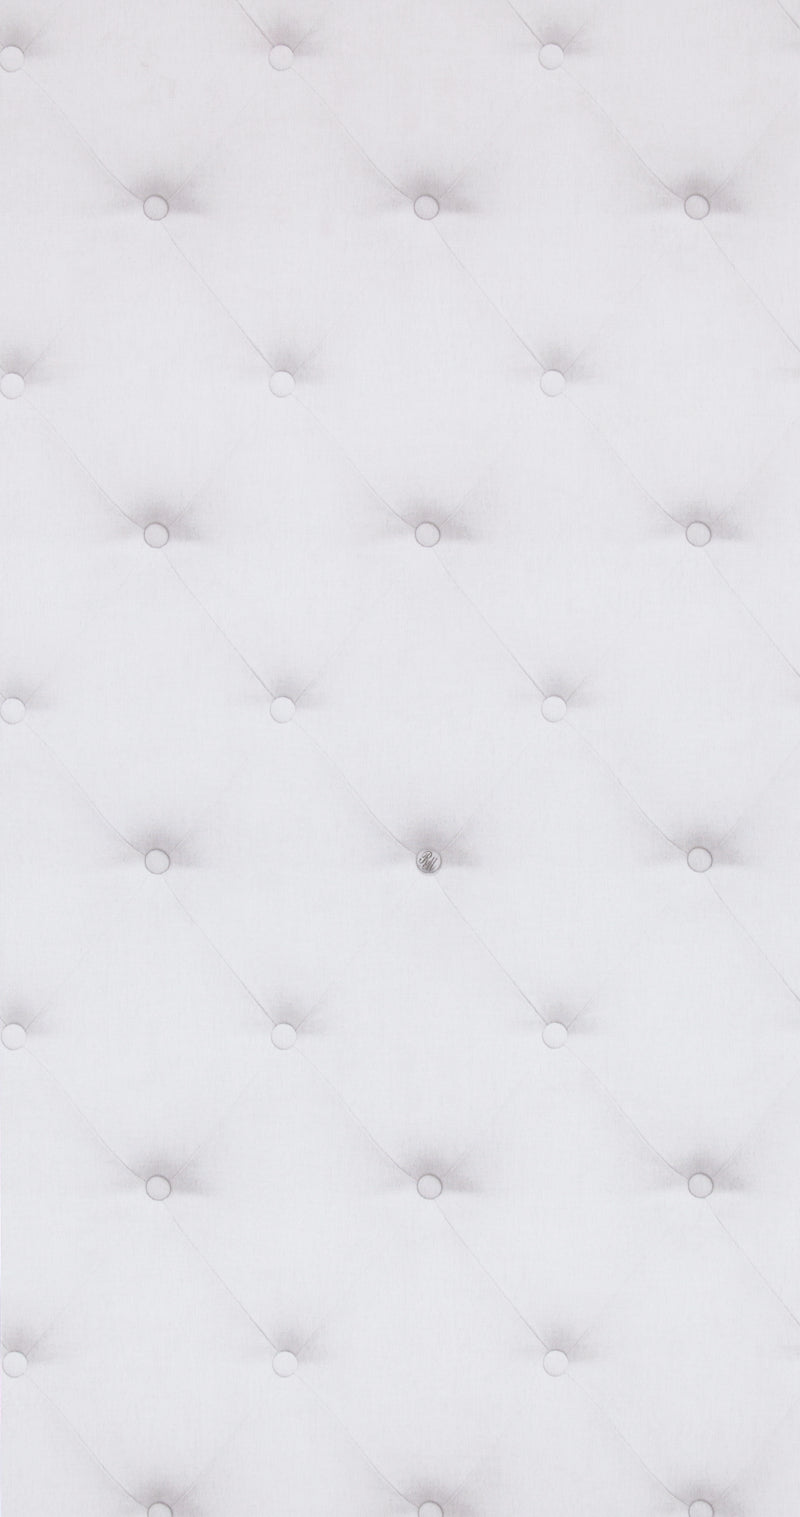 White Faux Tufted Cushion Wallpaper R4328 | Modern Home Interior